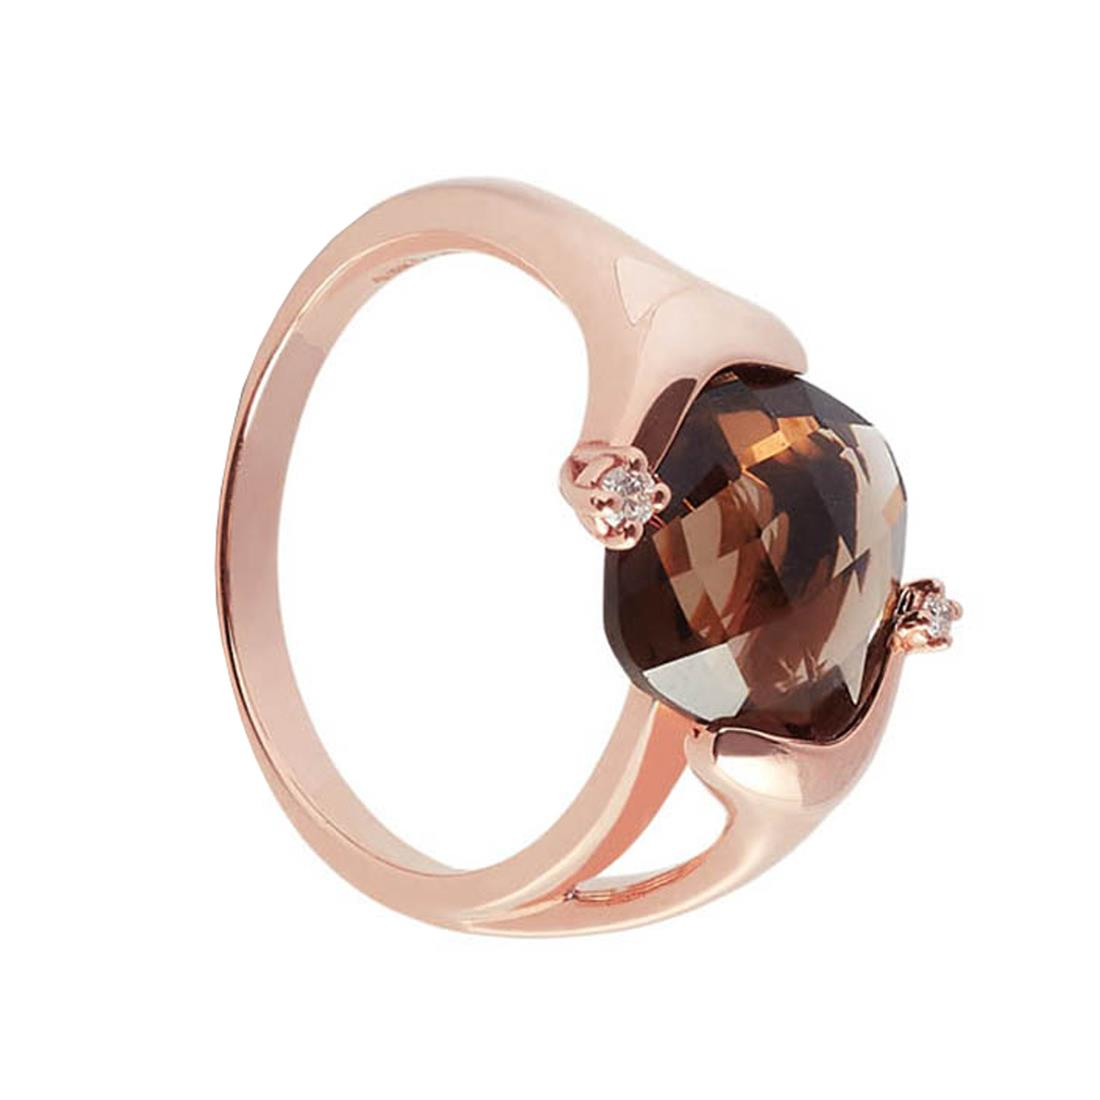 Rose gold ring with 3.95 ct square briolette smoky quartz and 0.03 ct diamonds. 